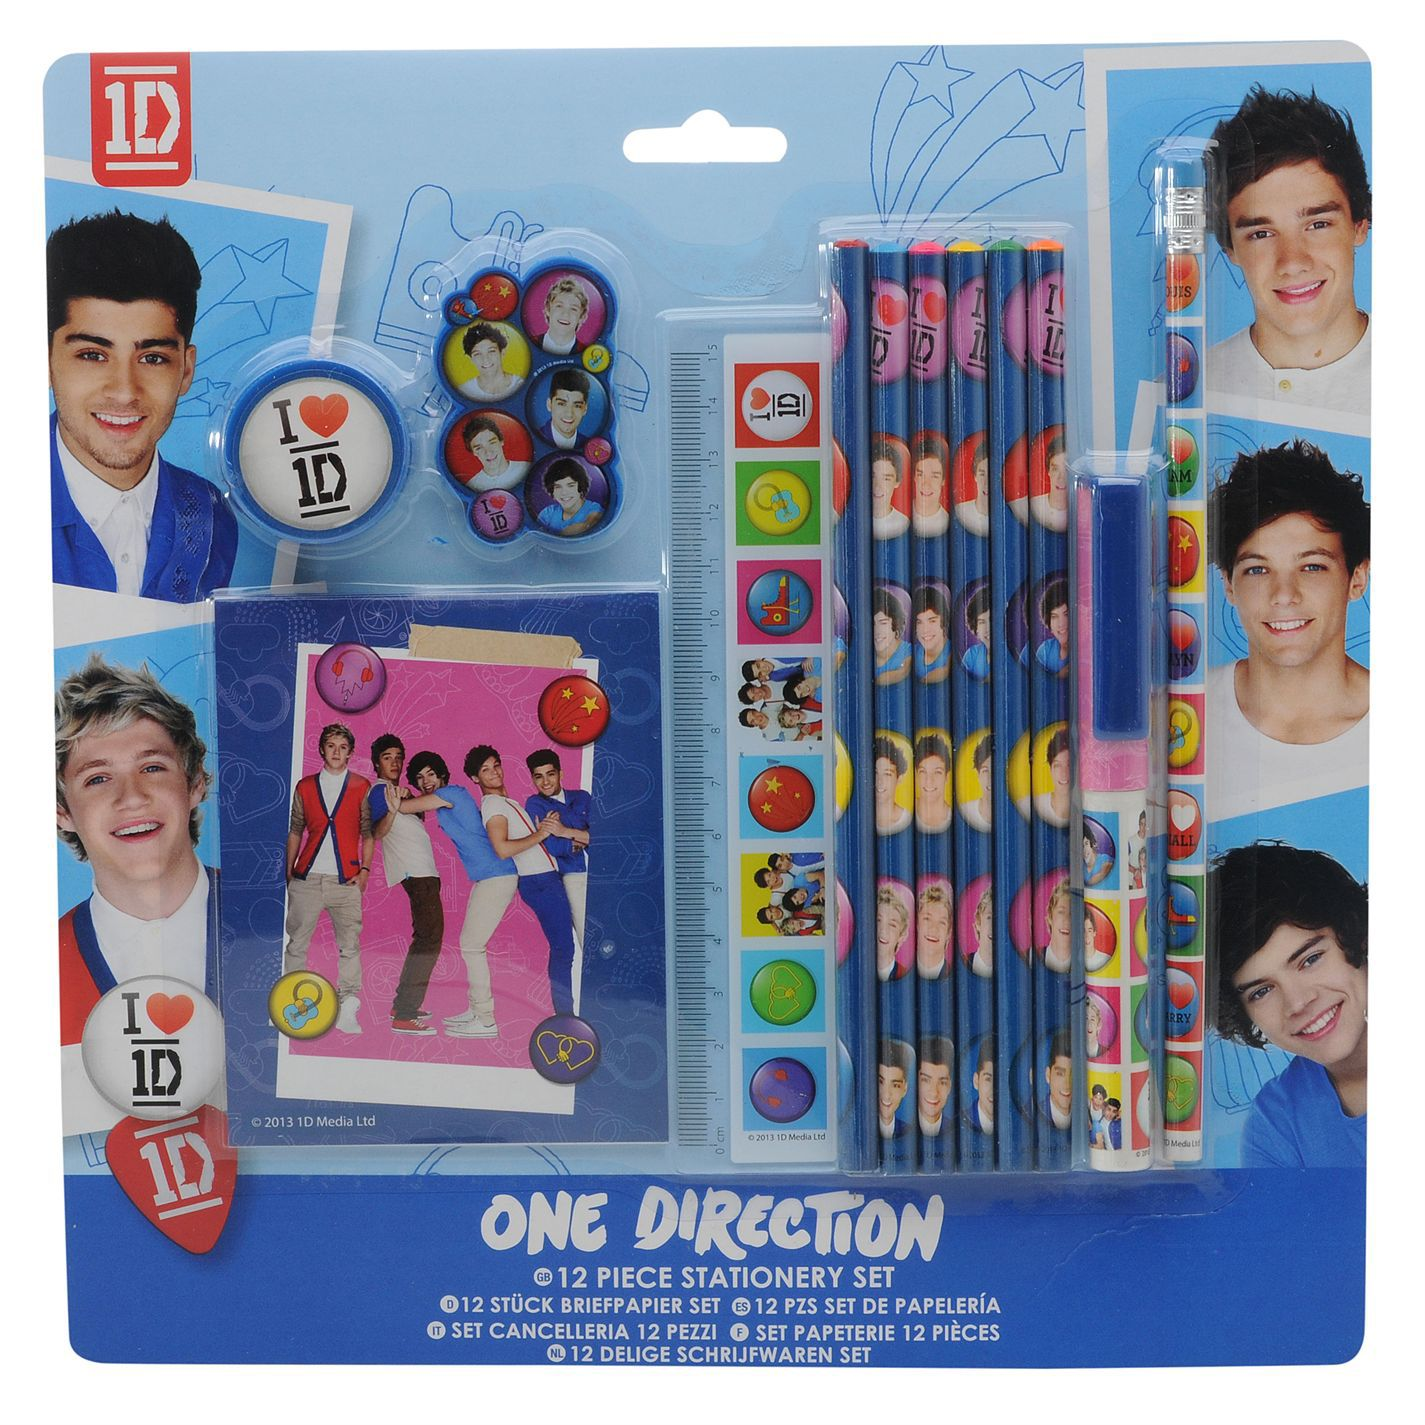 One Direction Super Stationery Set